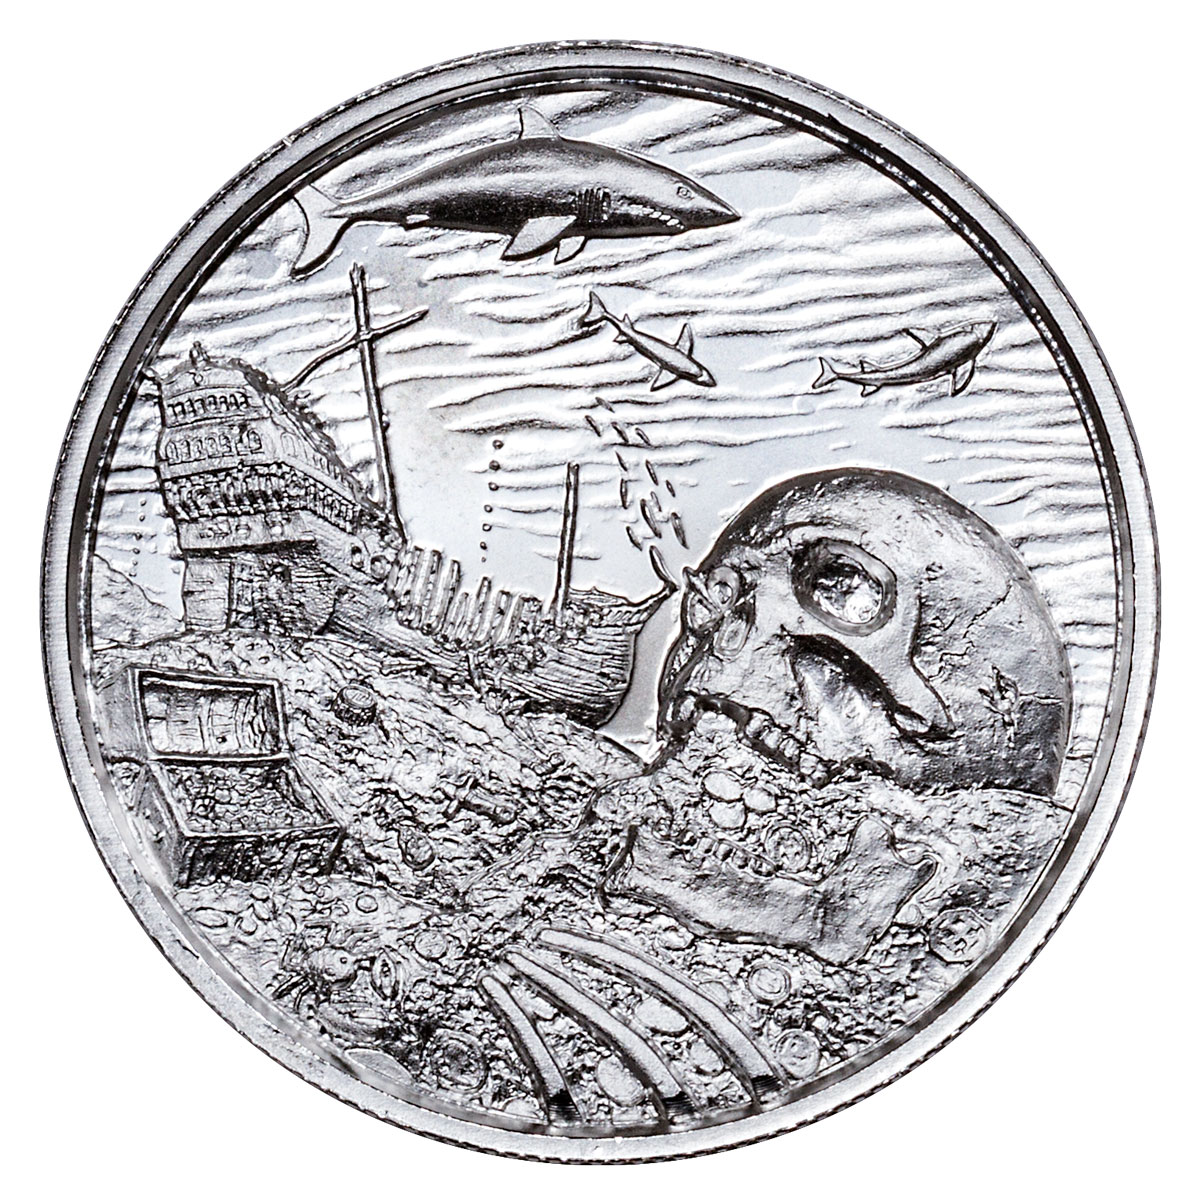 2018 Privateer - Davy Jones' Locker Ultra High Relief 2 oz Silver Round GEM BU